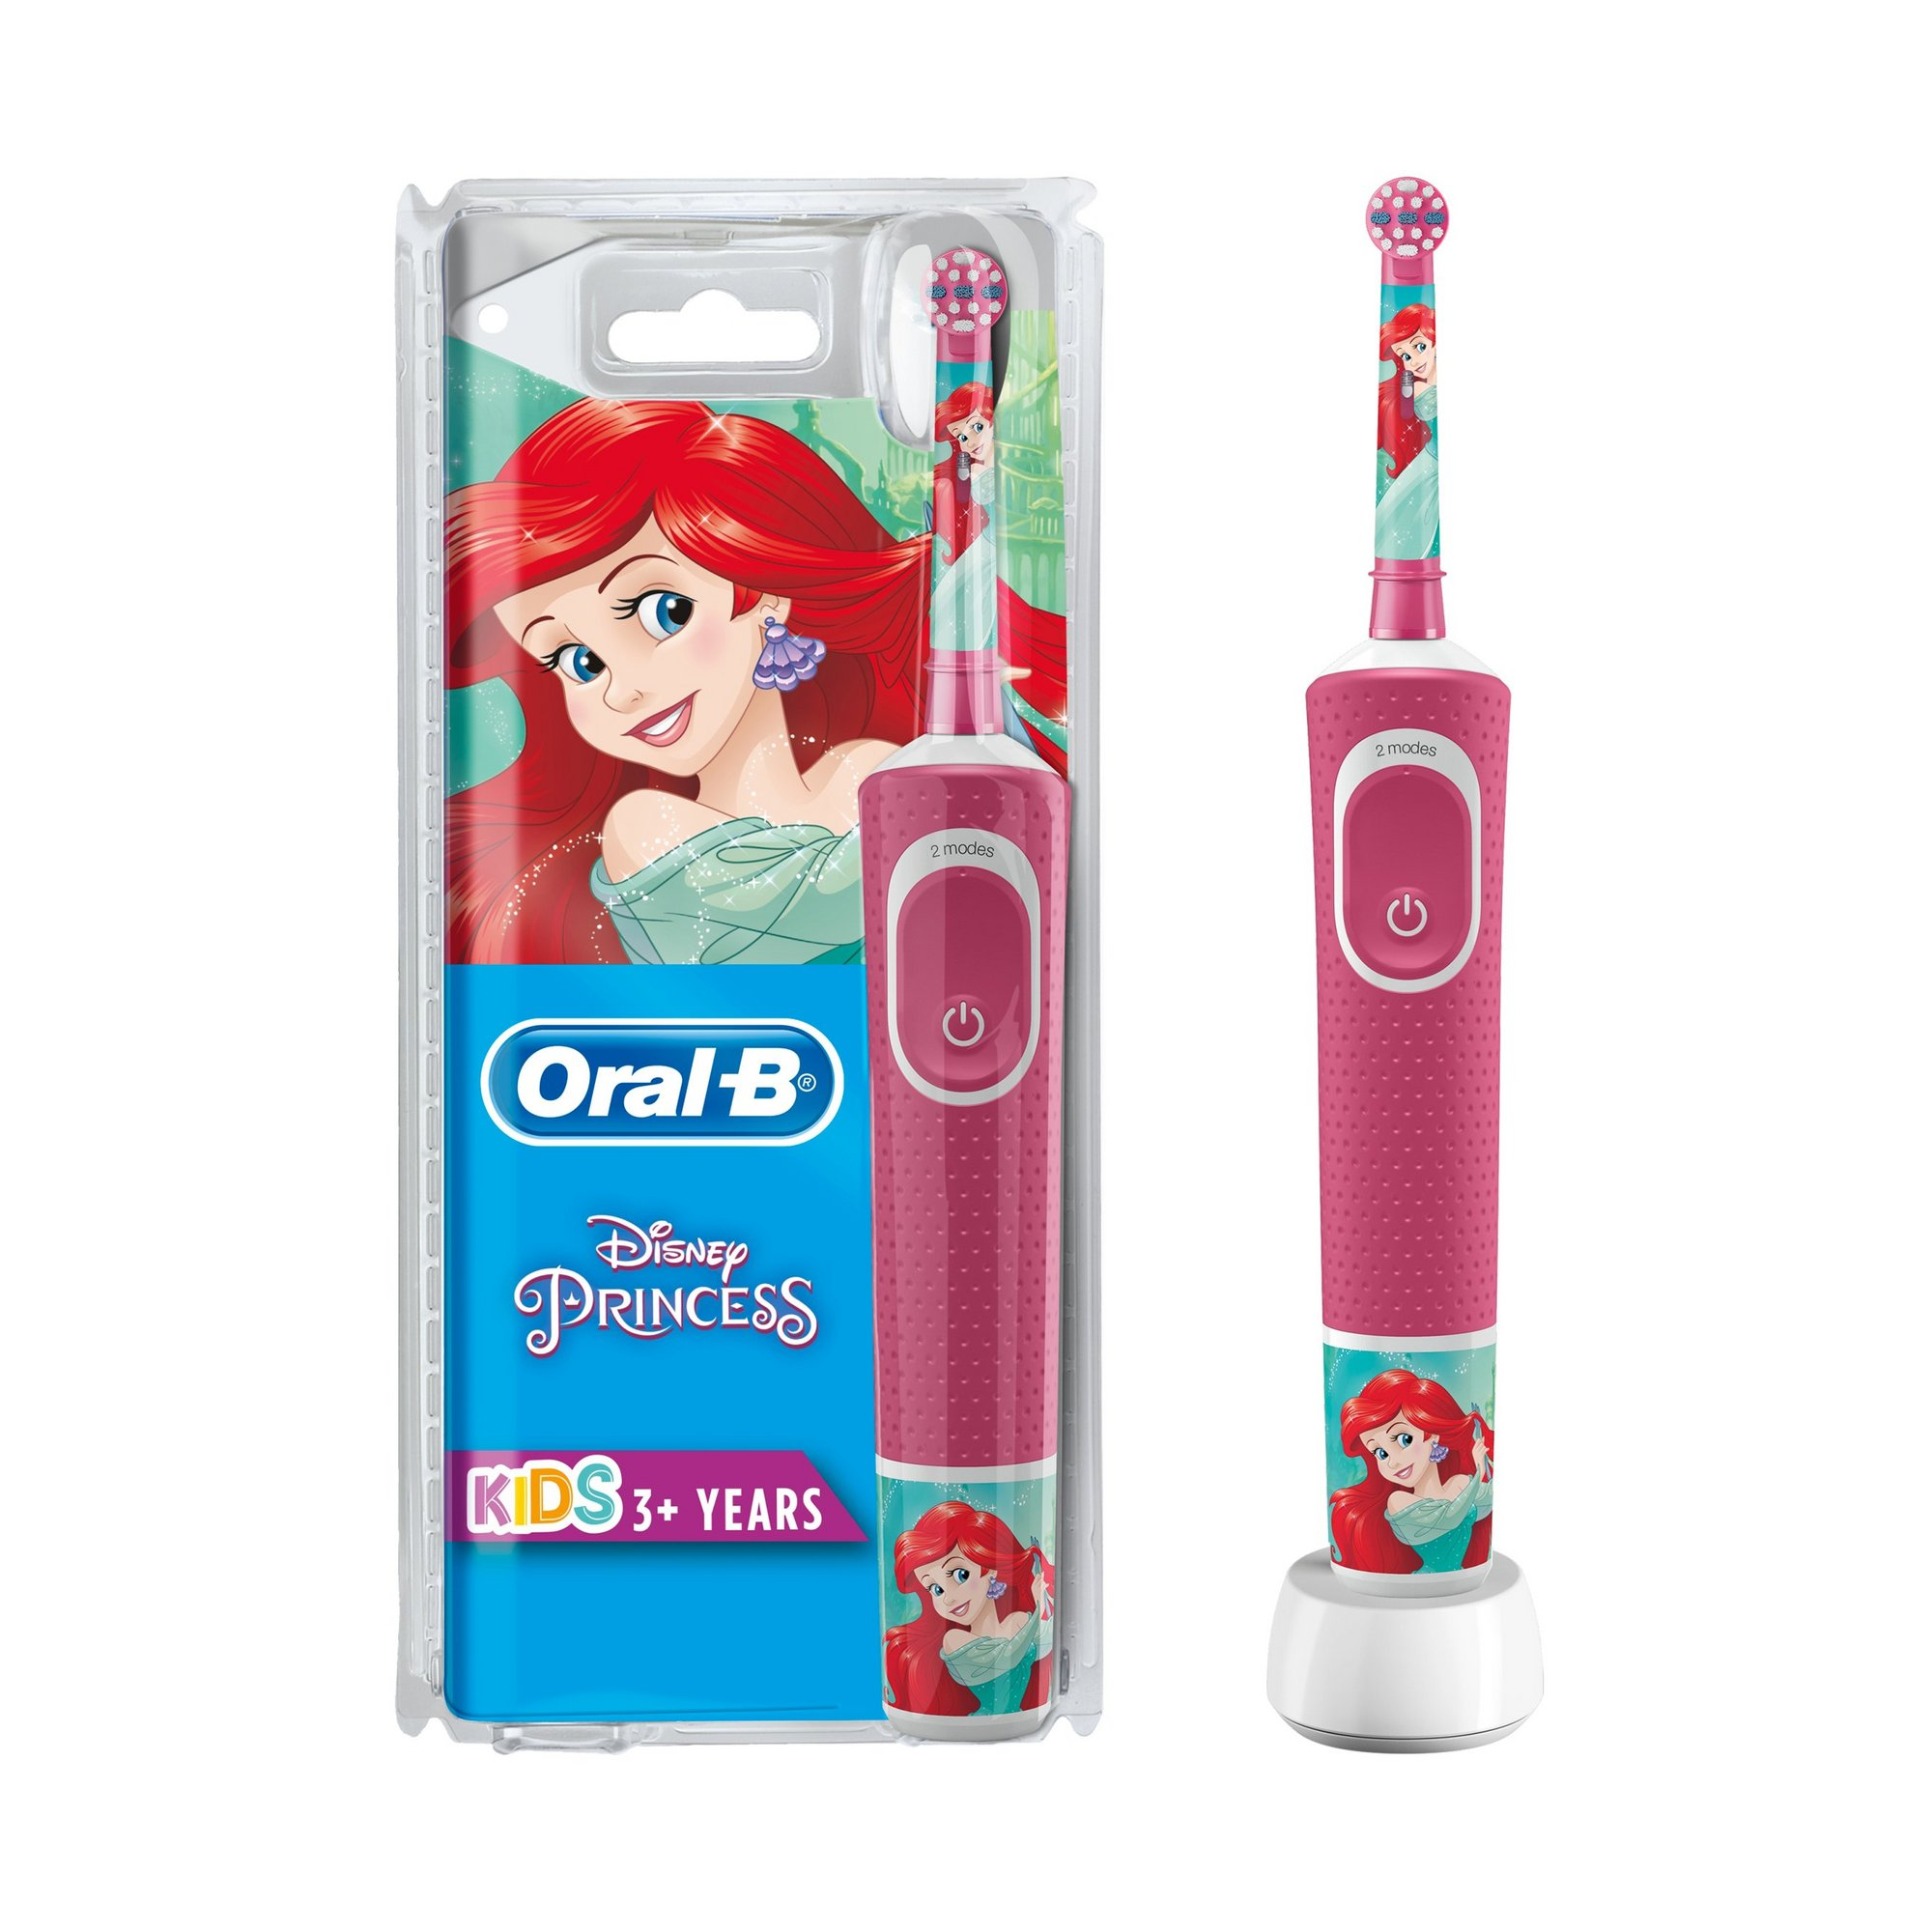 Image of Oral B Disney Kids Princess Rechargeable Toothbrush